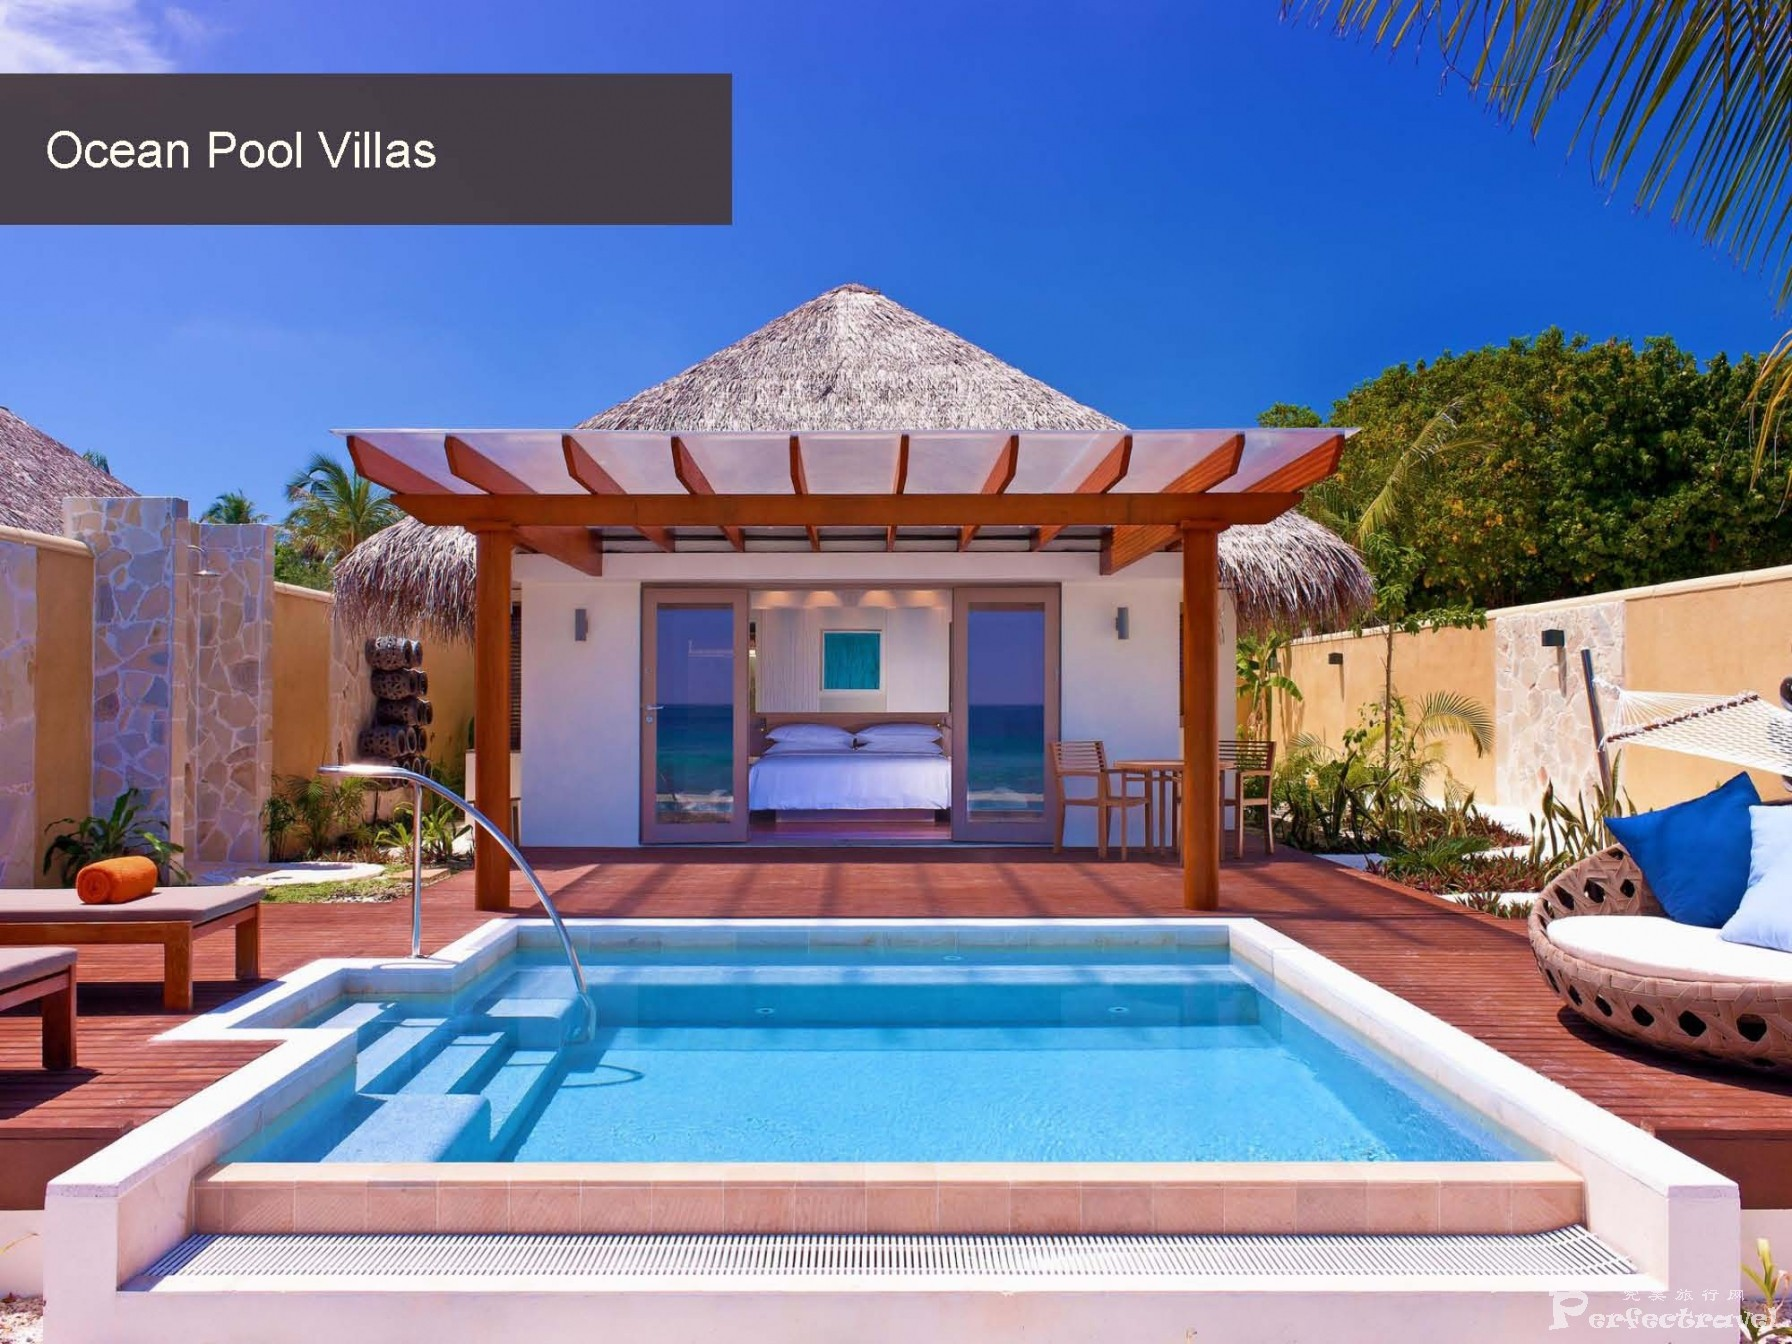 Sheraton Maldives - Overview Presentation 2015_Page_15.jpg